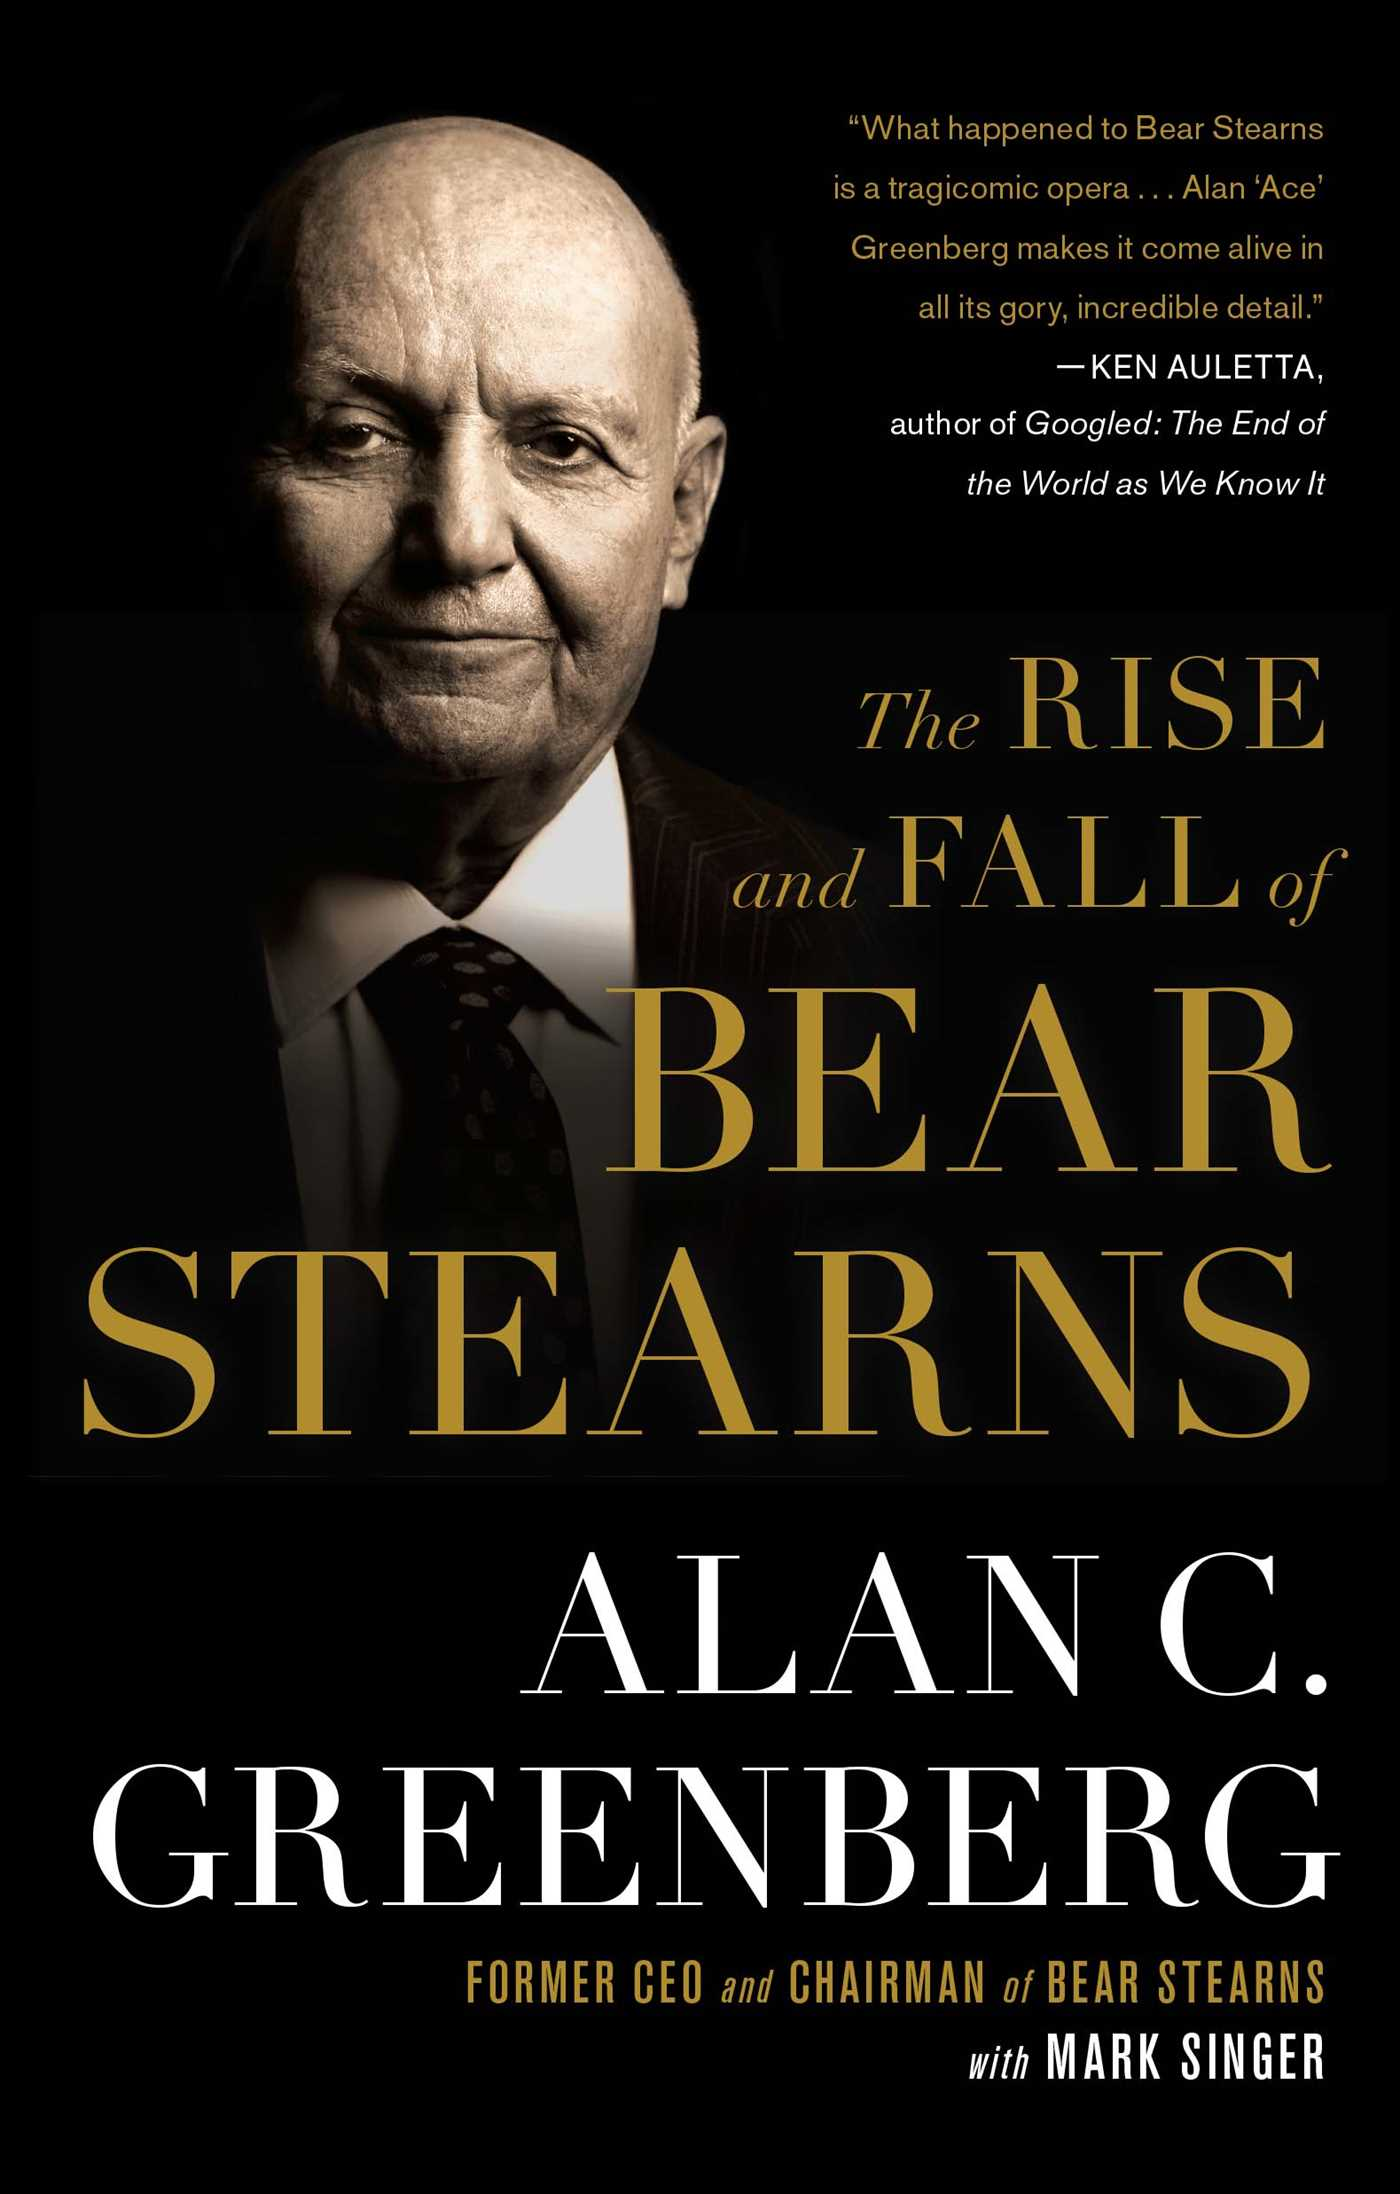 The rise and fall of bear stearns 9781439101421 hr